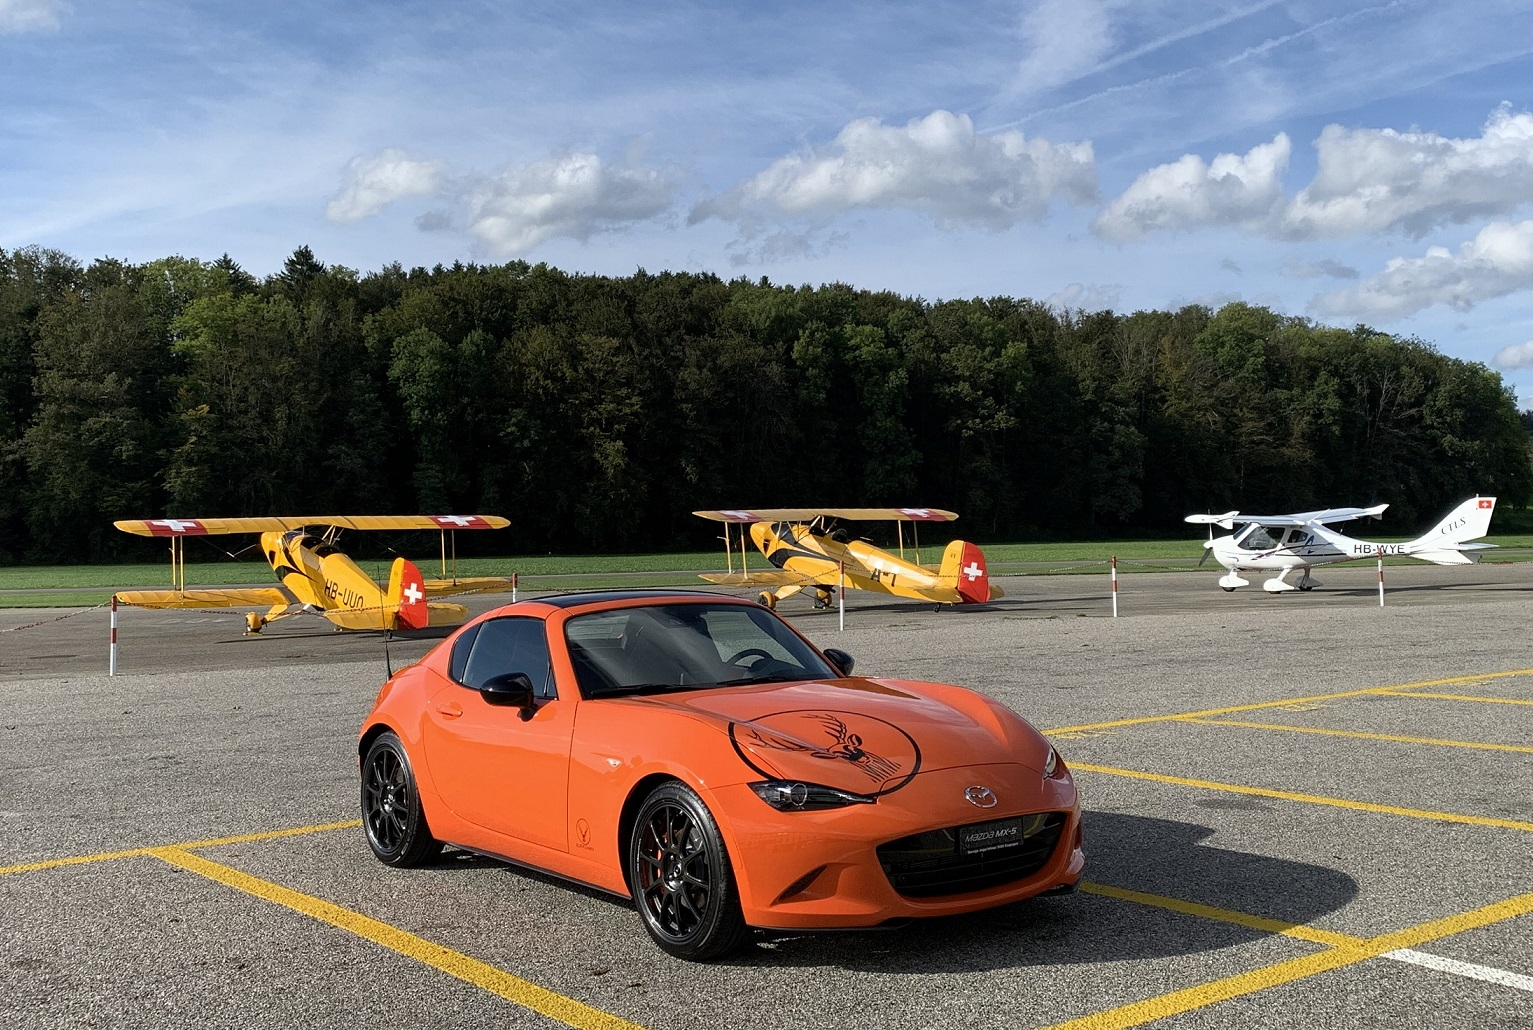 https://garage-jegerlehner.mazda.ch/wp-content/uploads/sites/61/2019/11/MX-5-30th-Anniversary-s.jpg